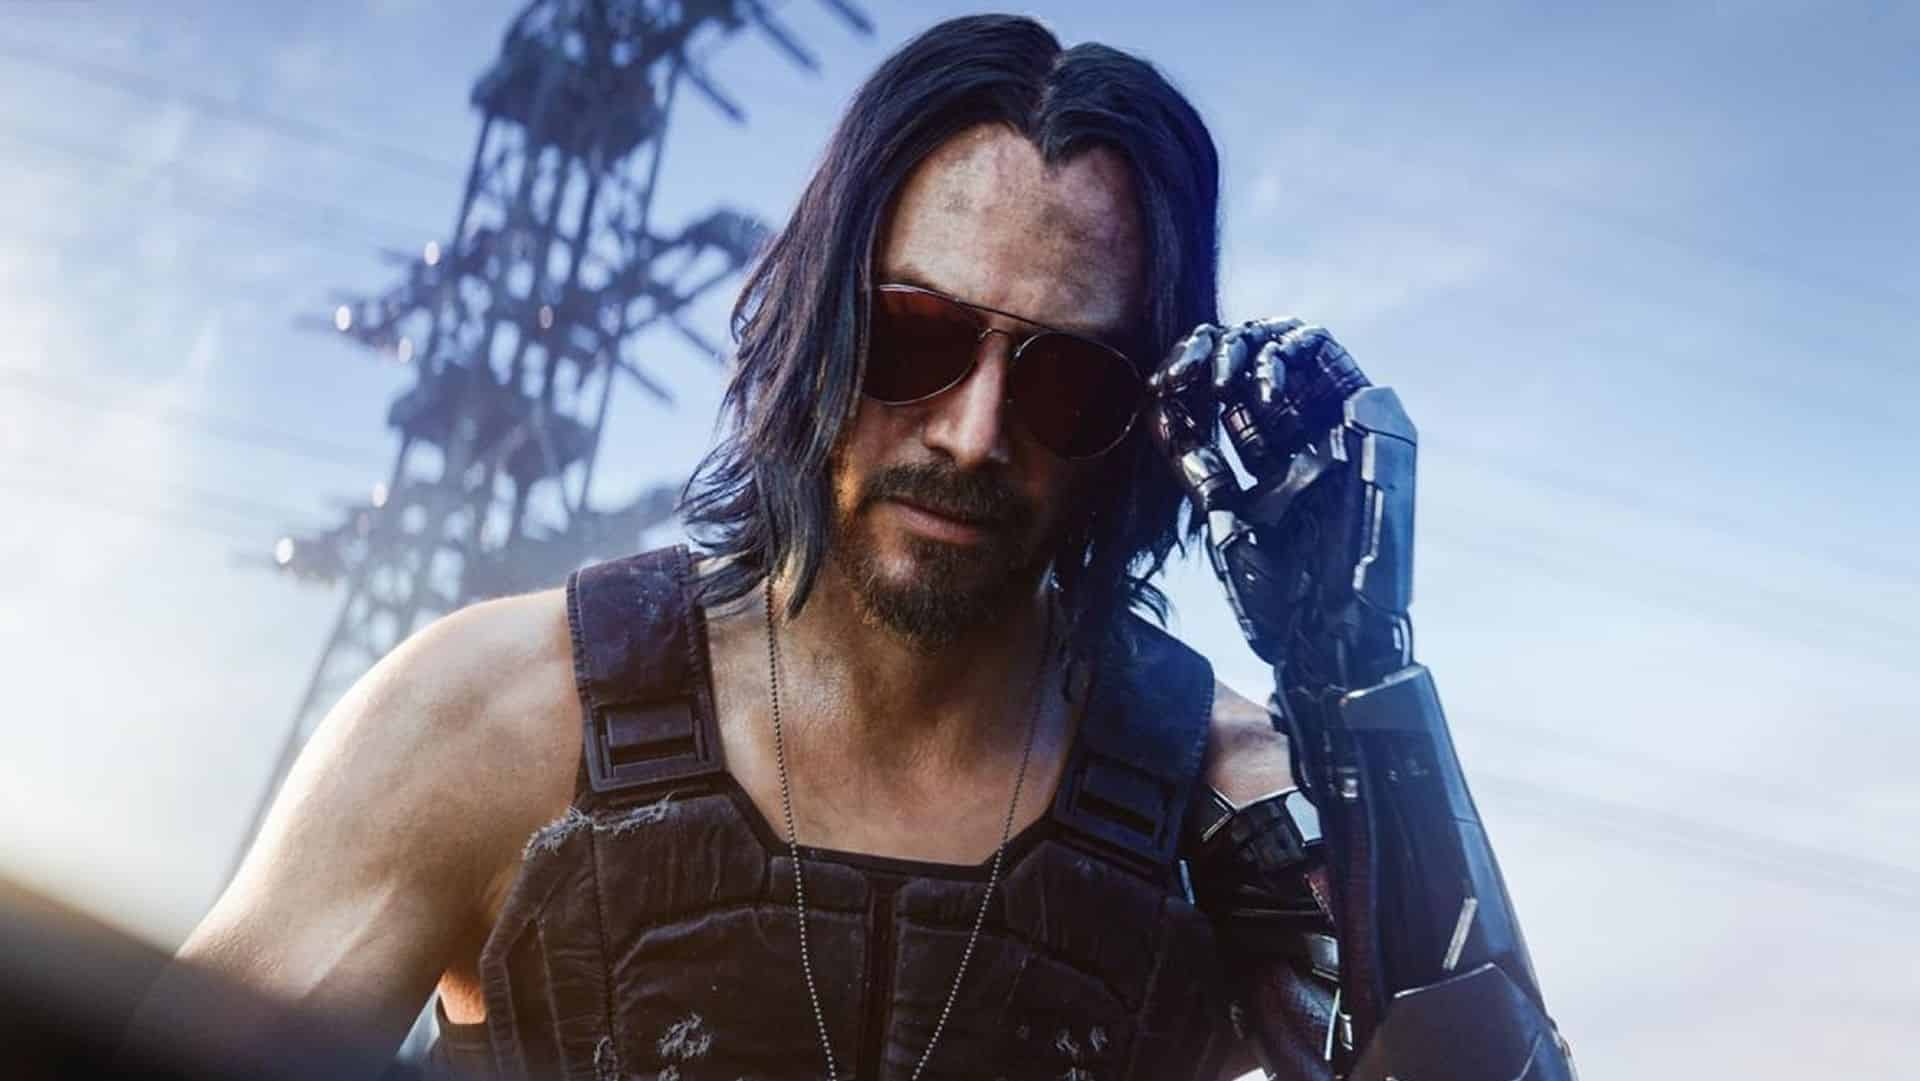 Cyberpunk 2077 Originally Had Wall Running Mechanics - GLITCHED